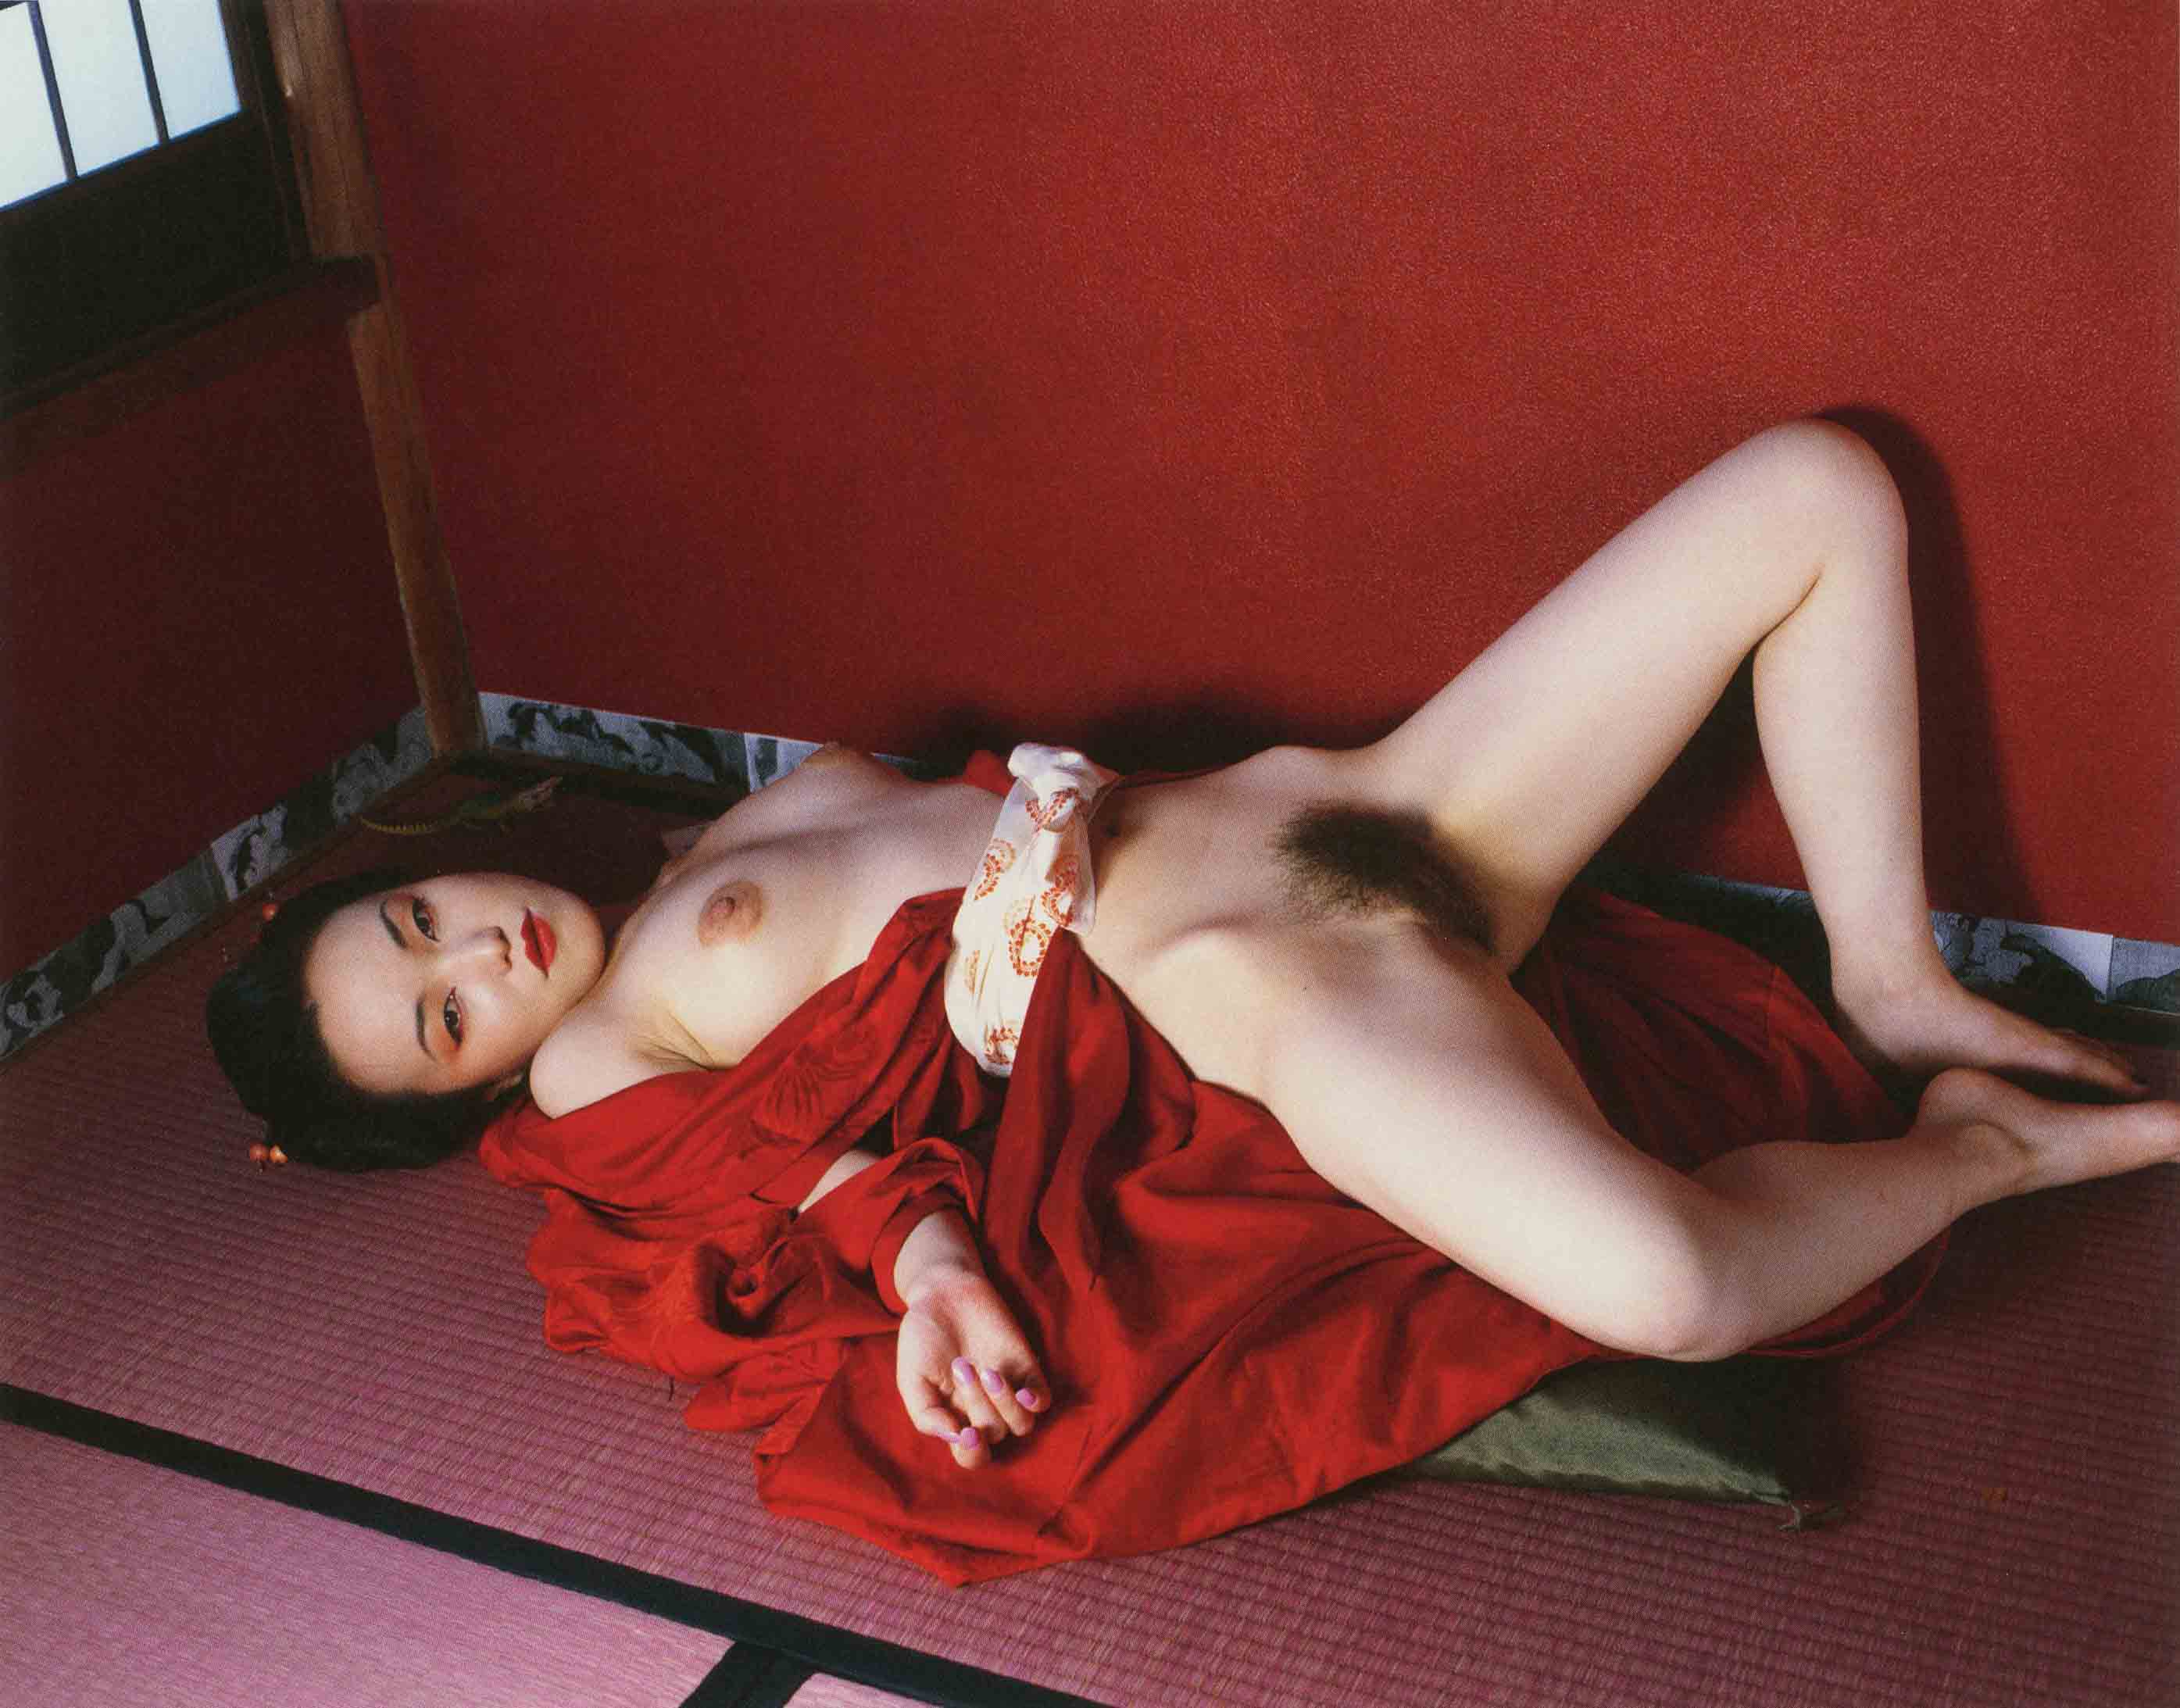 Nobuyoshi Araki_Komari from L'Amant, (Suicide in Tokyo), 2002, Private Collection, New York